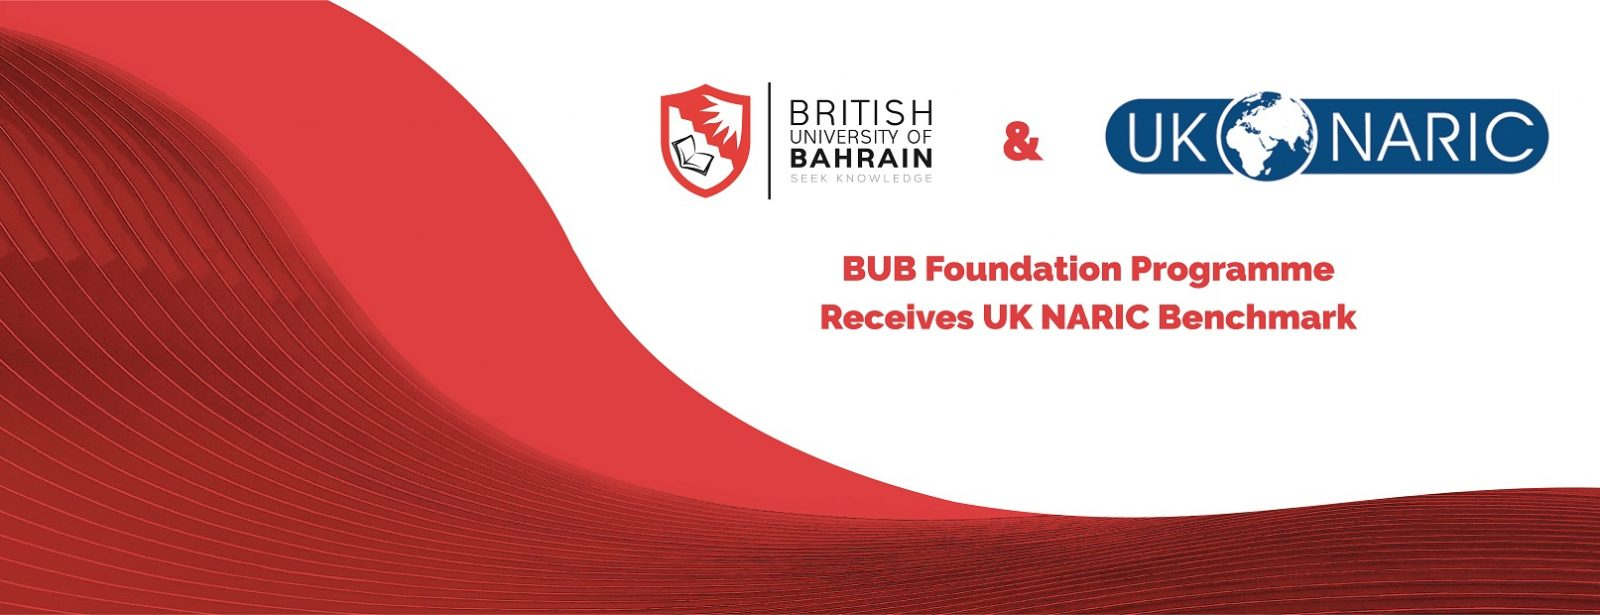 BUB has now achieved UK Naric approval for the BUB Foundation programme. Also all of the Level 3 UK Degree Courses at BUB will now be accepted for entry to any UK University.